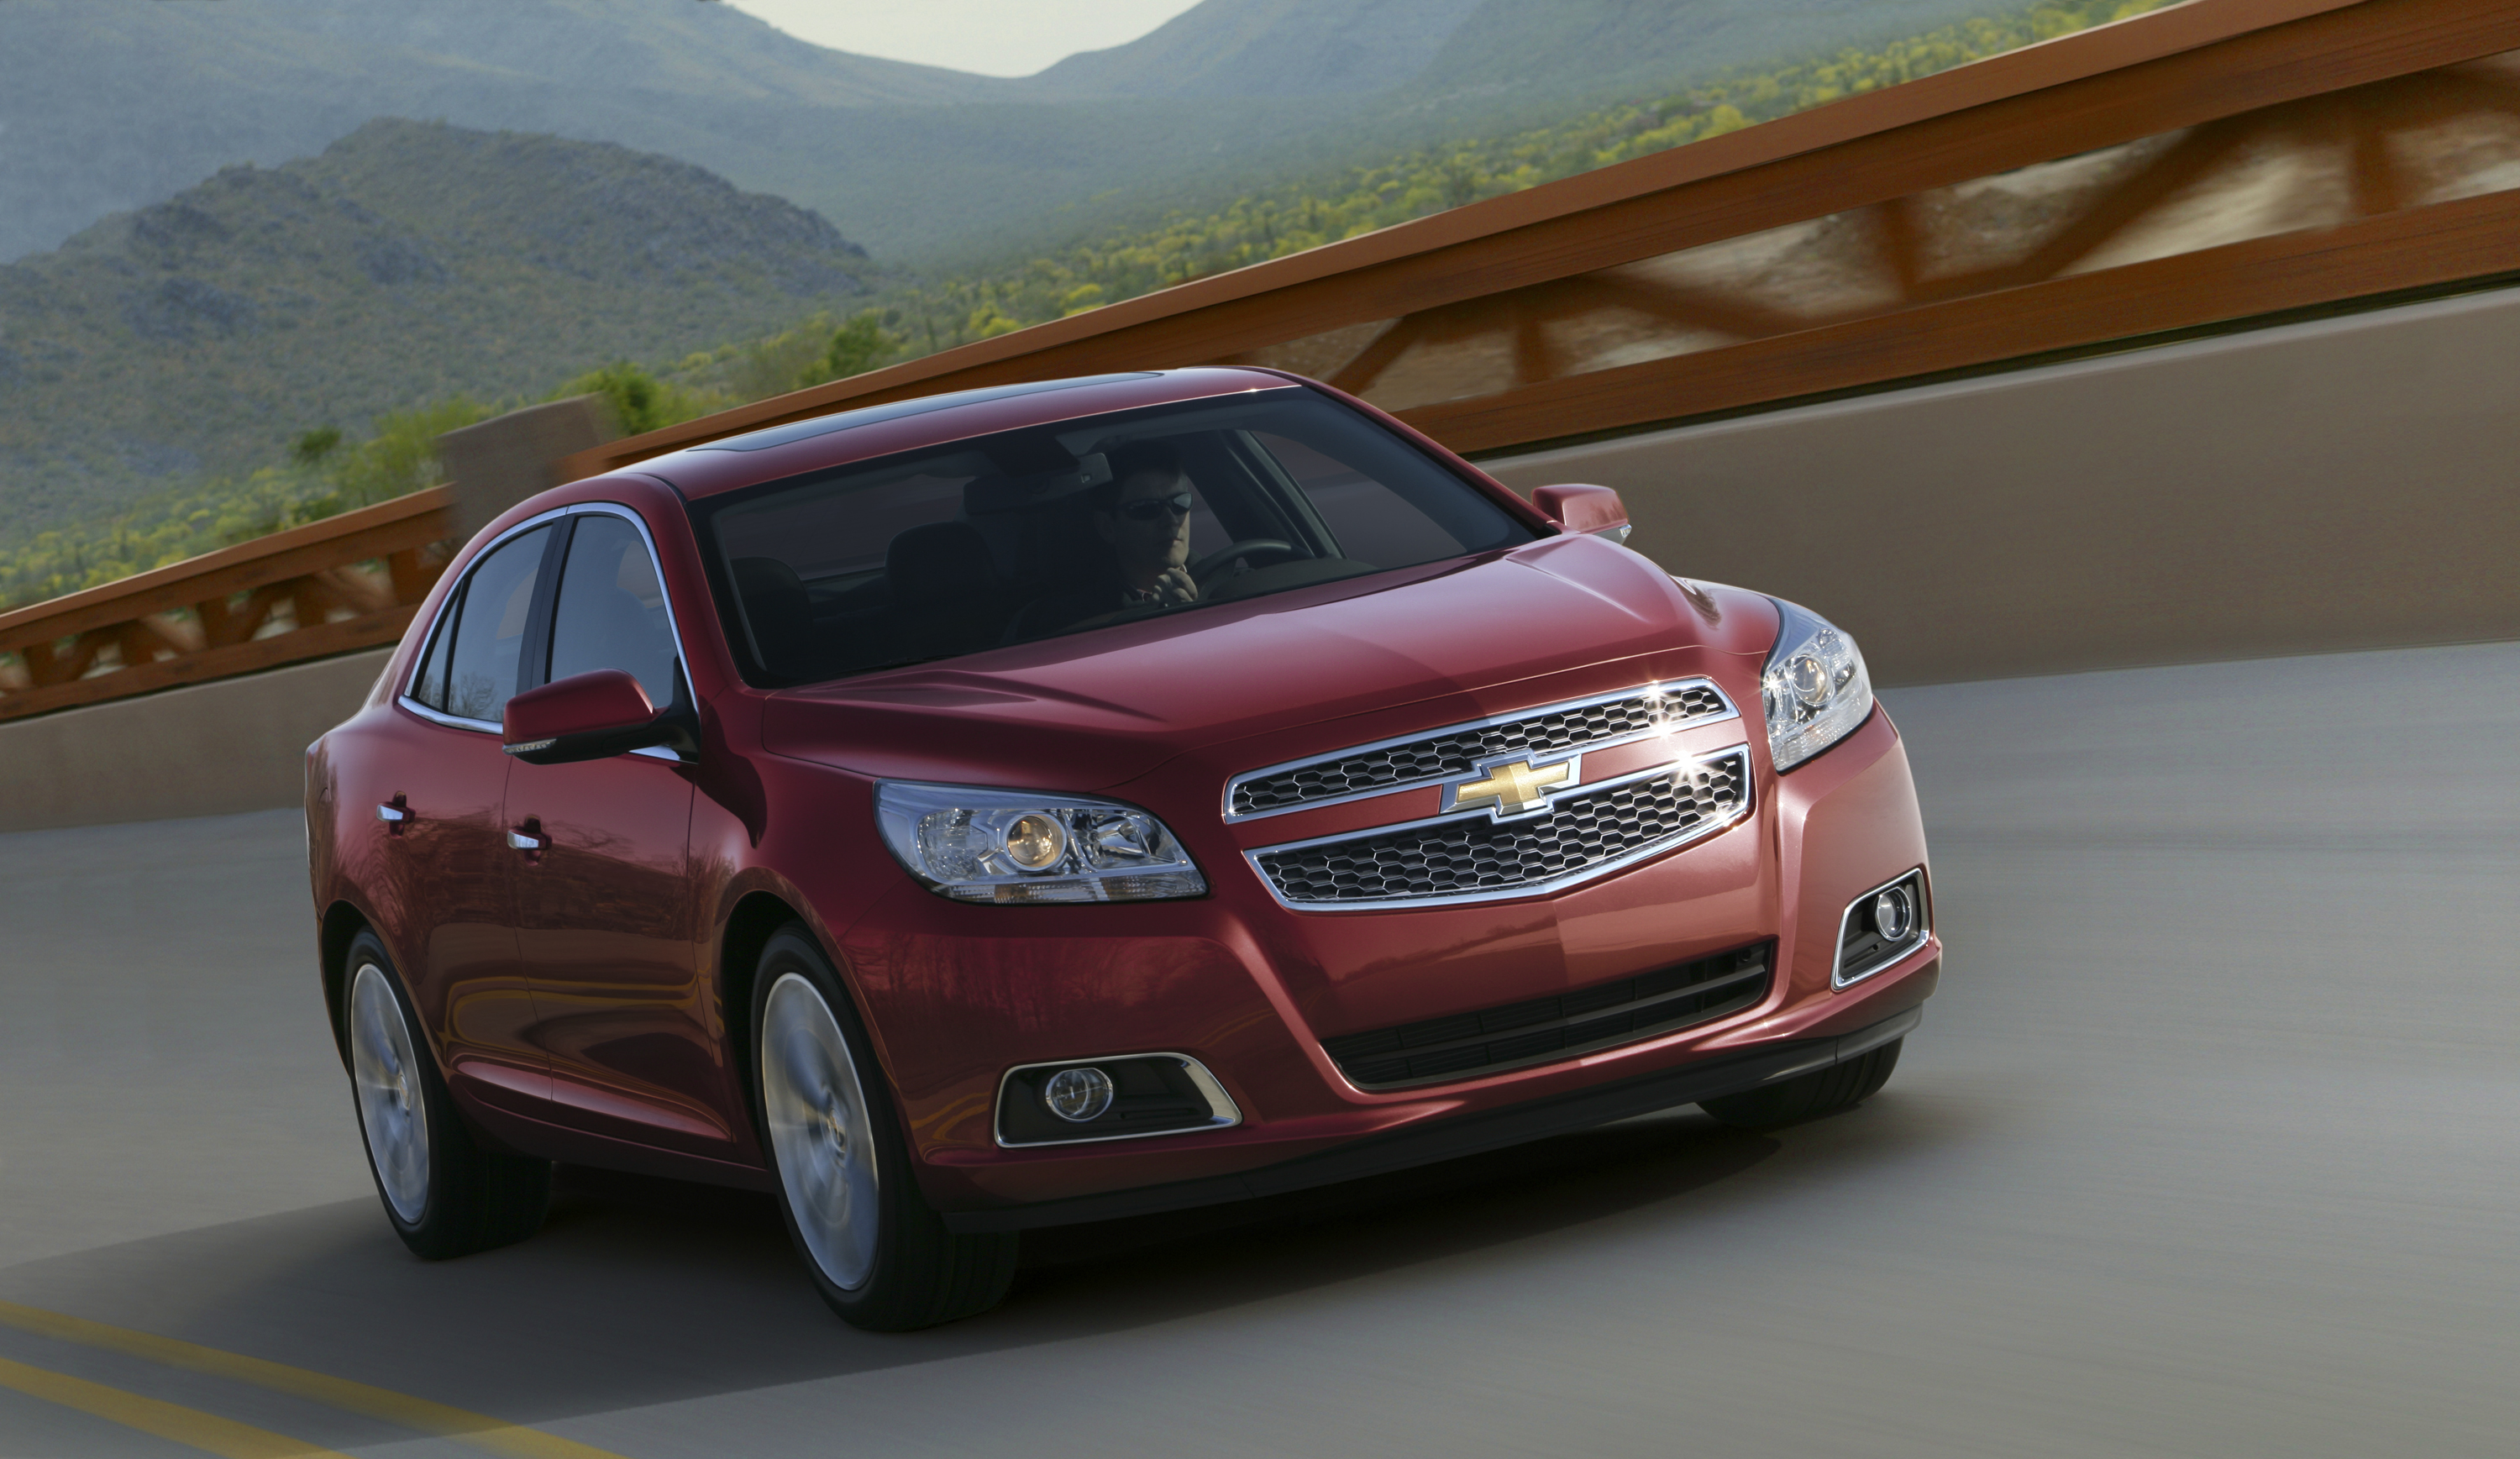 All-New 2013 Chevrolet Malibu Gives Customers More